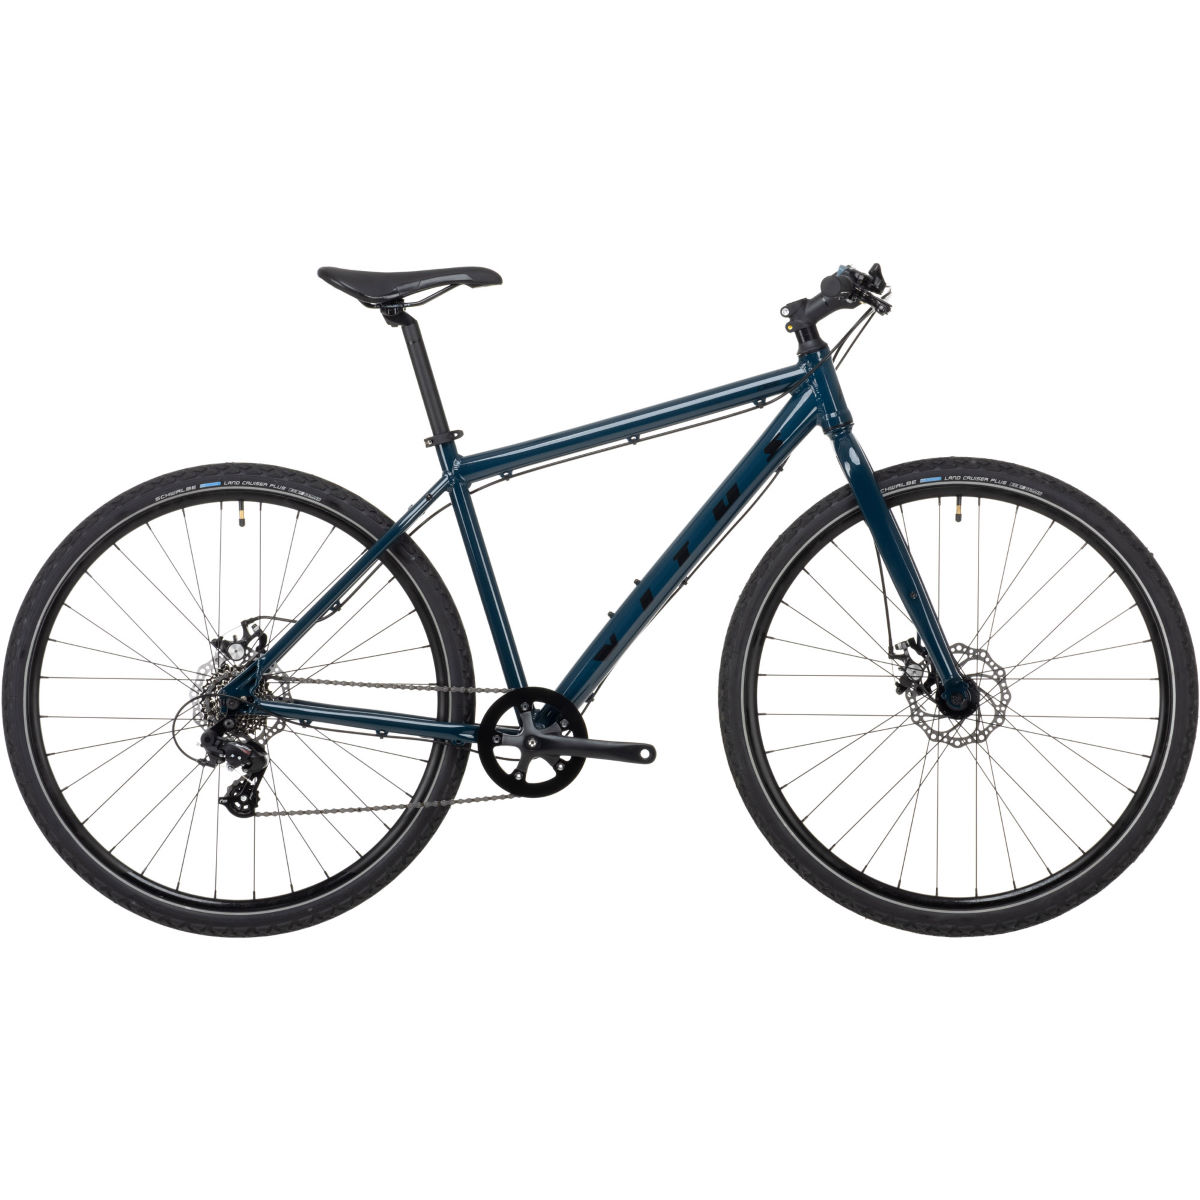 Vitus Vitus Dee City Bike (Tourney - 2021)   Hybrid Bikes